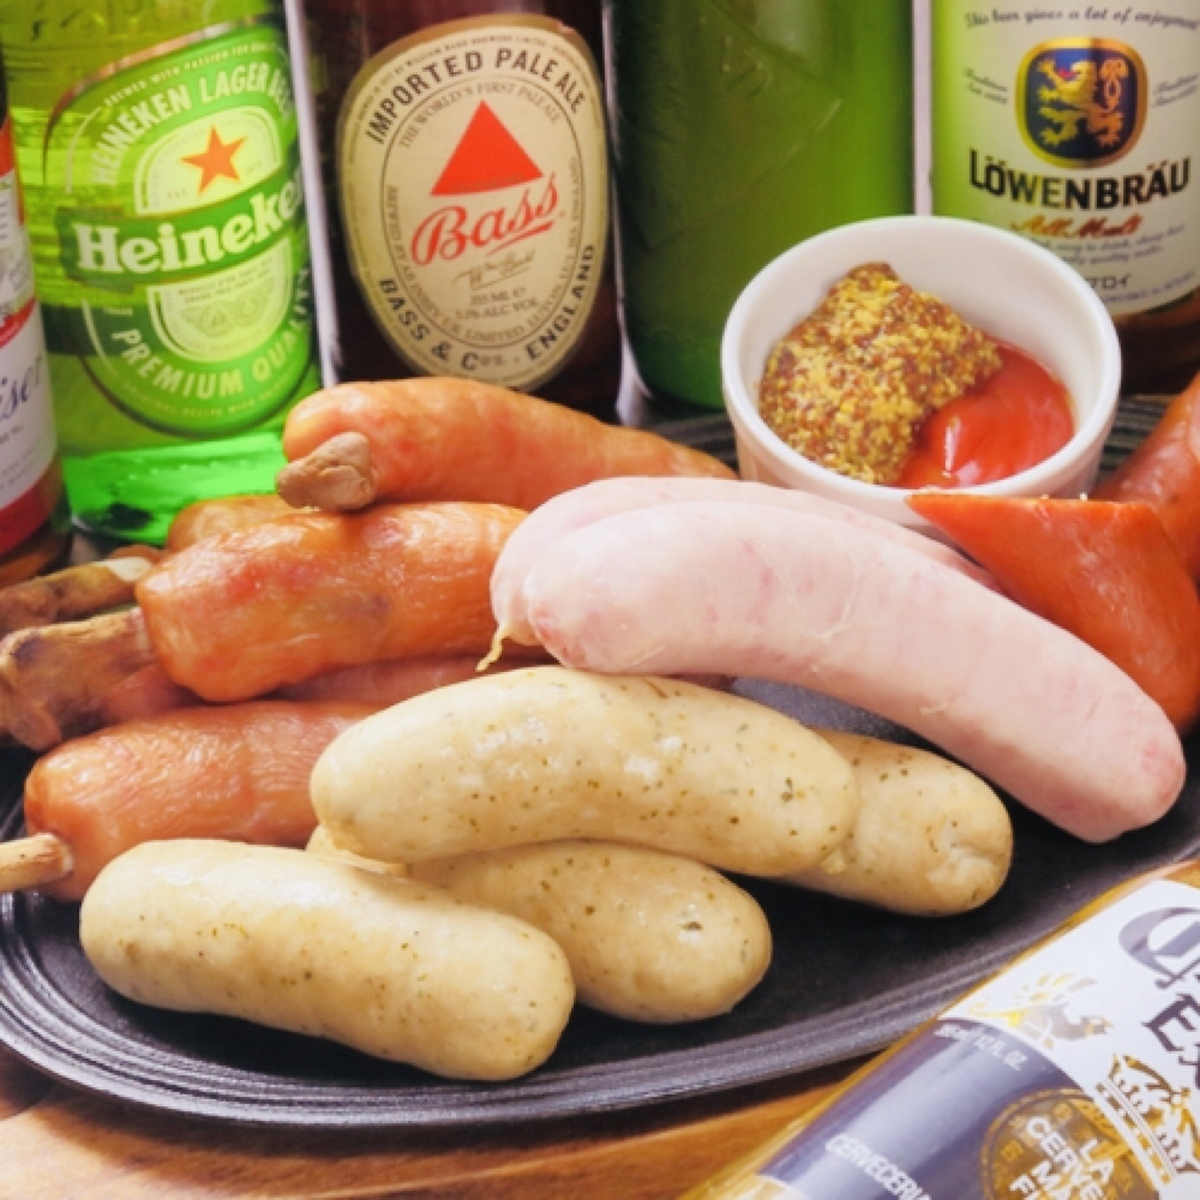 Assortment of various sausages